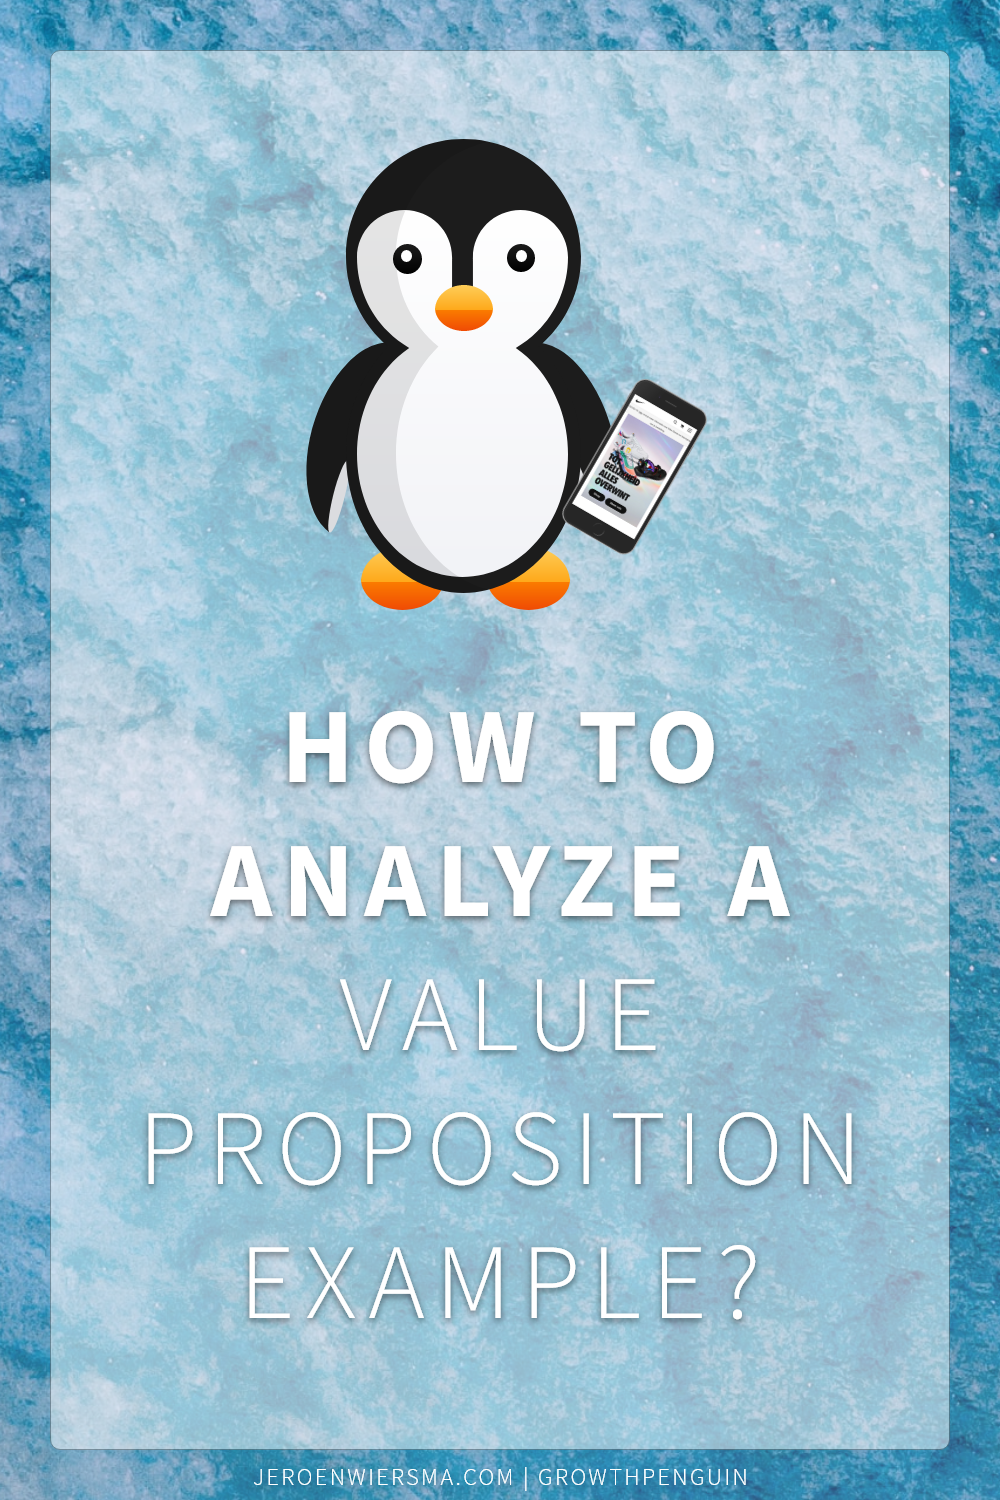 How to analyze a value proposition example